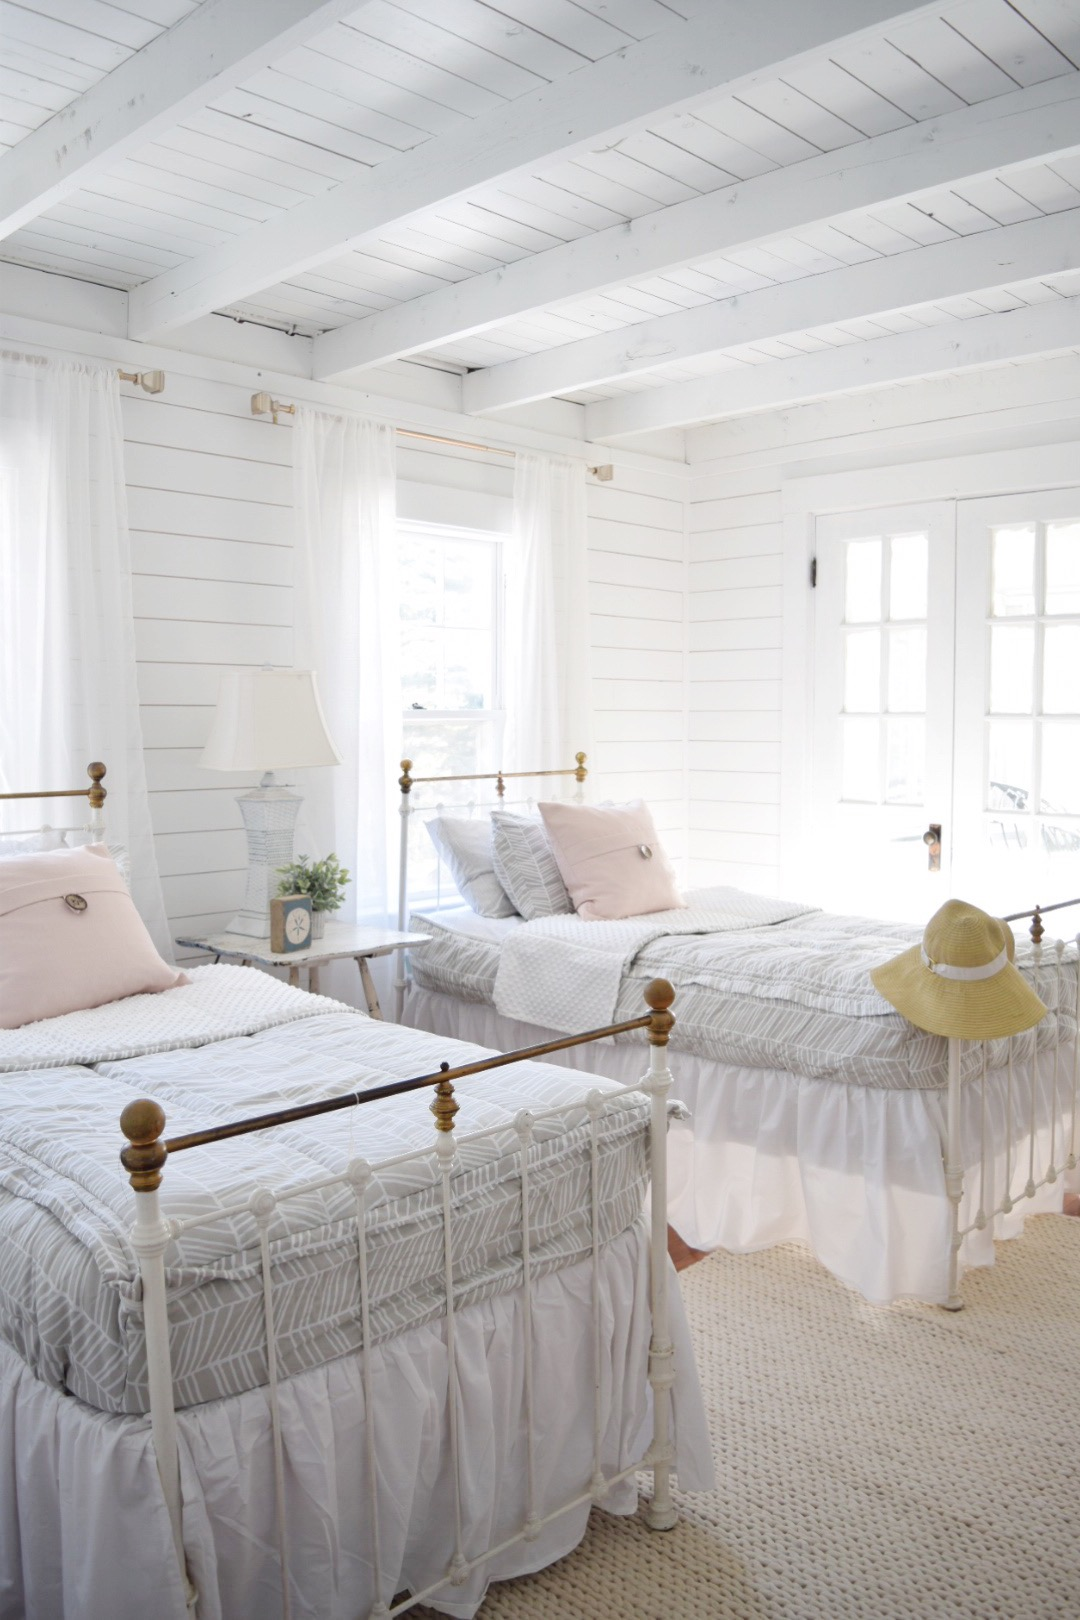 Beddys Bedding in real life bedrooms